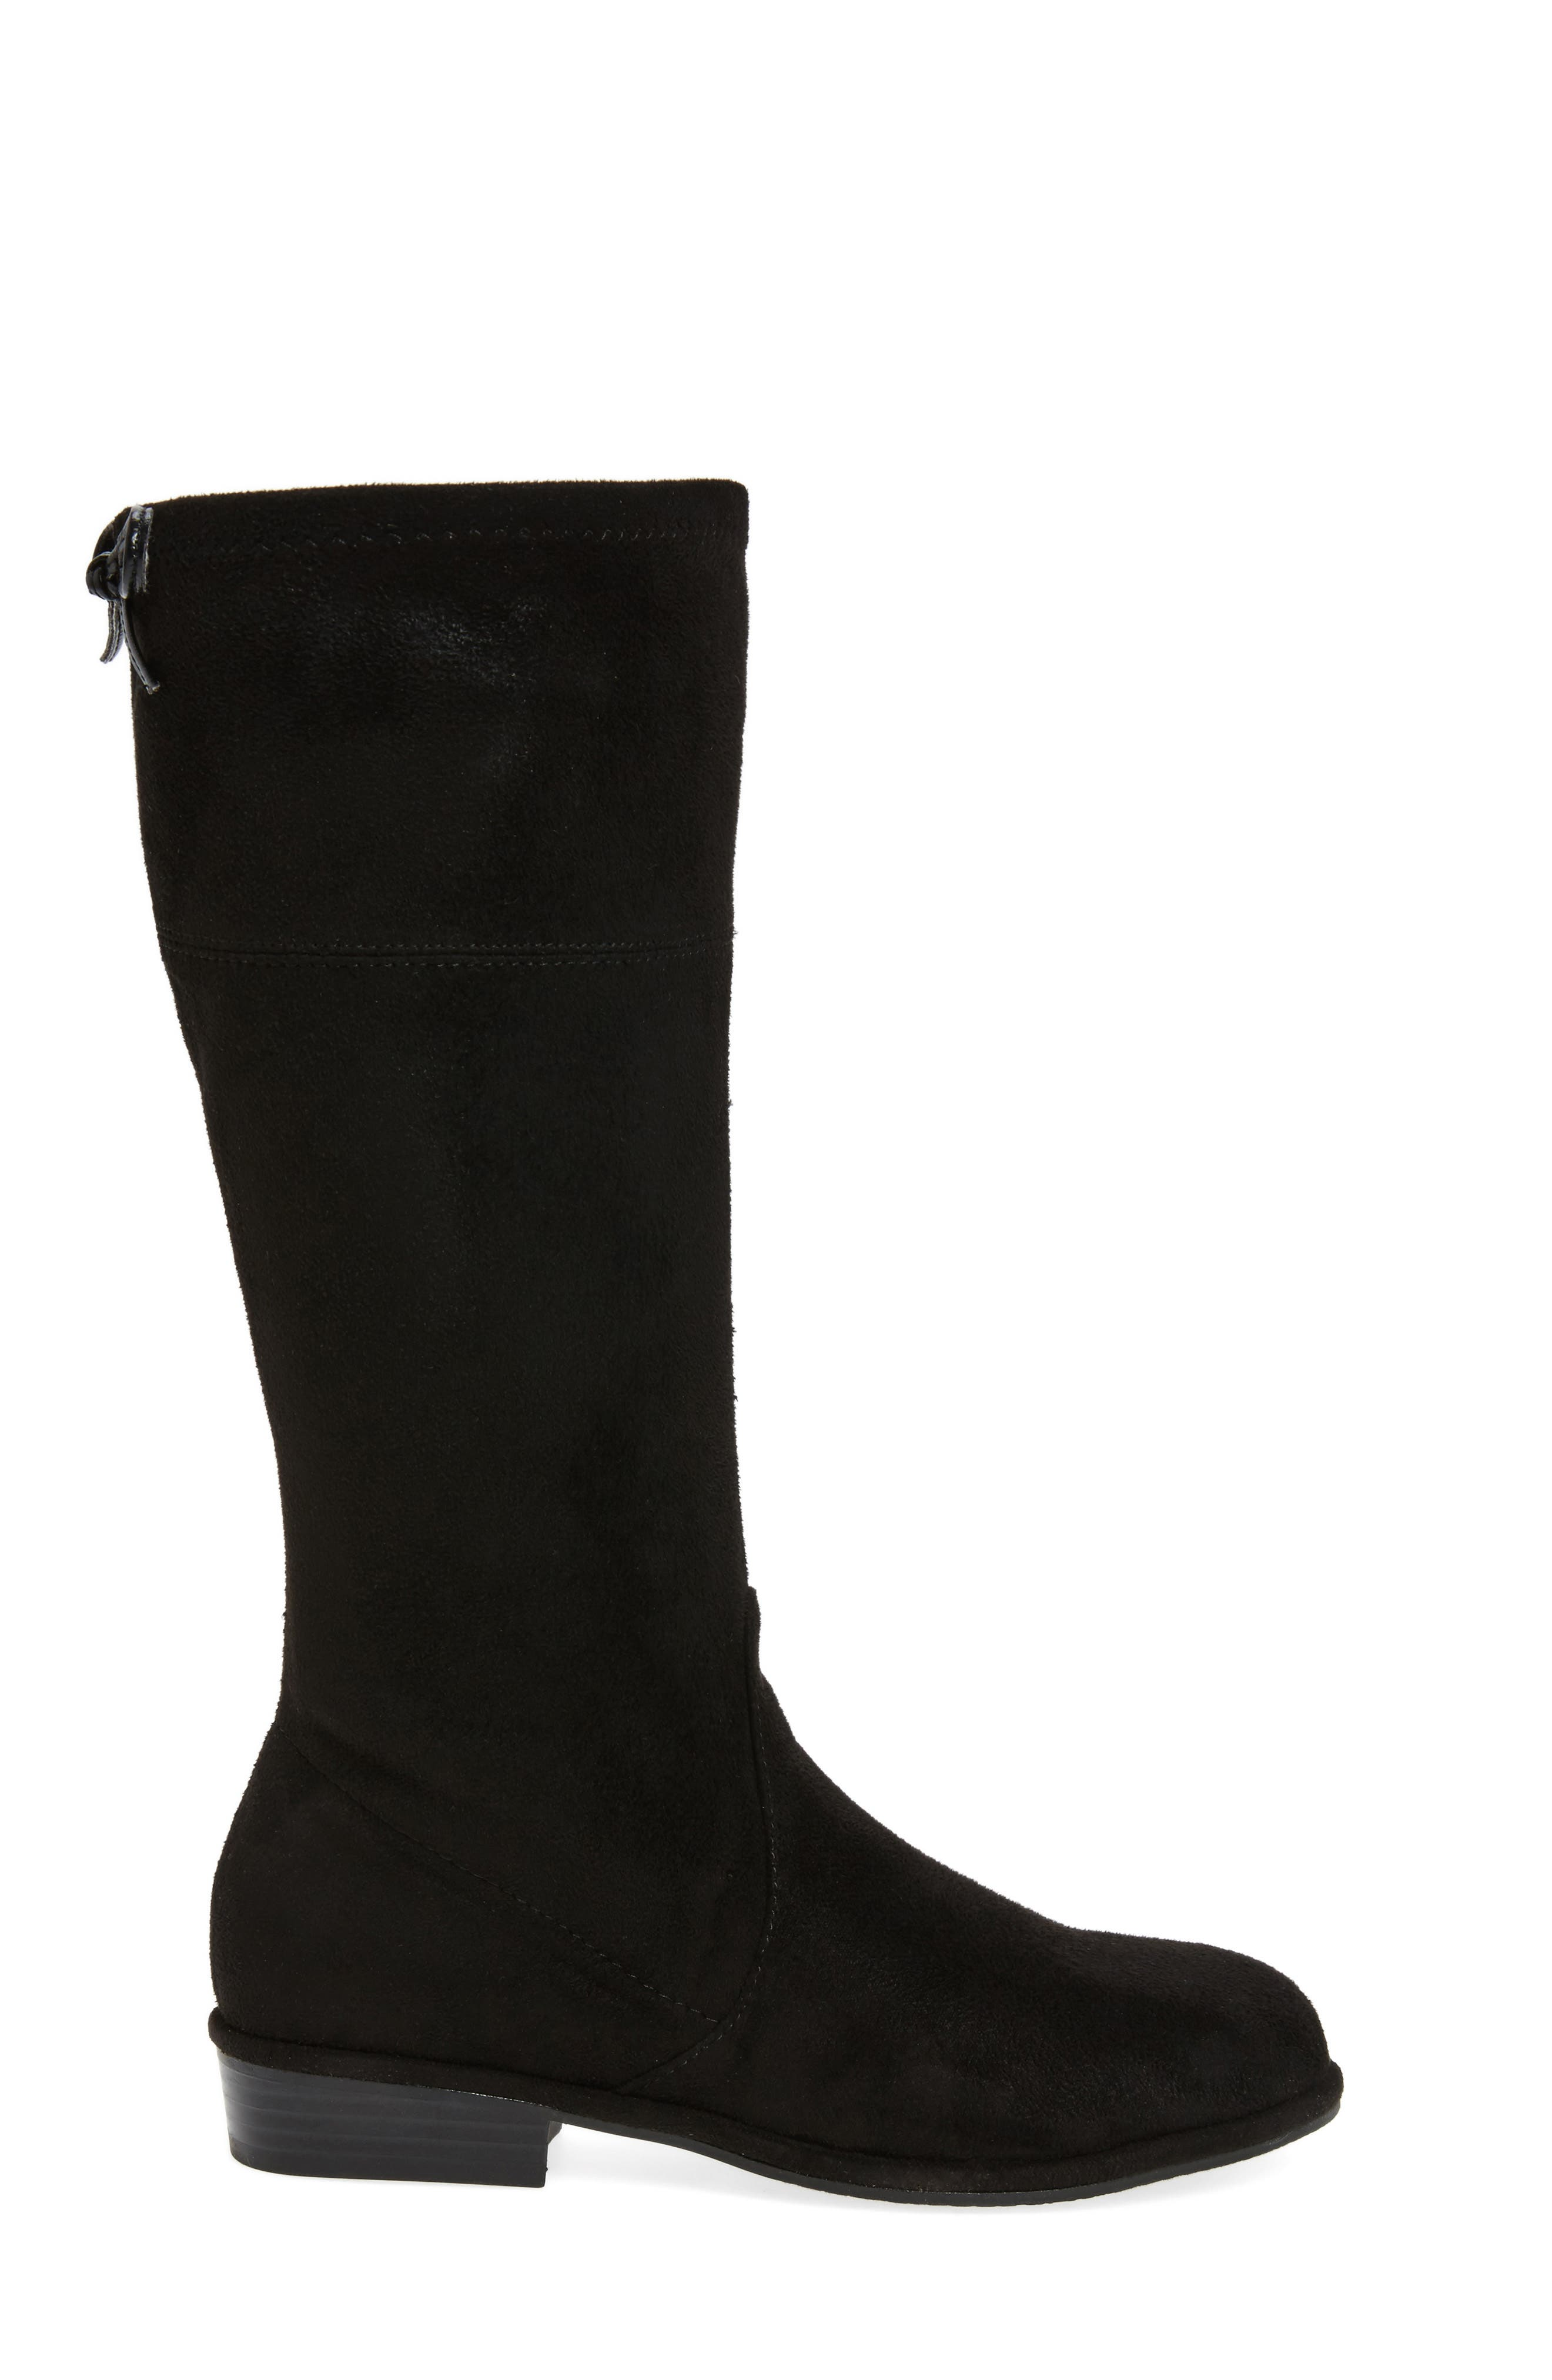 Lowland Bow Riding Boot,                             Alternate thumbnail 5, color,